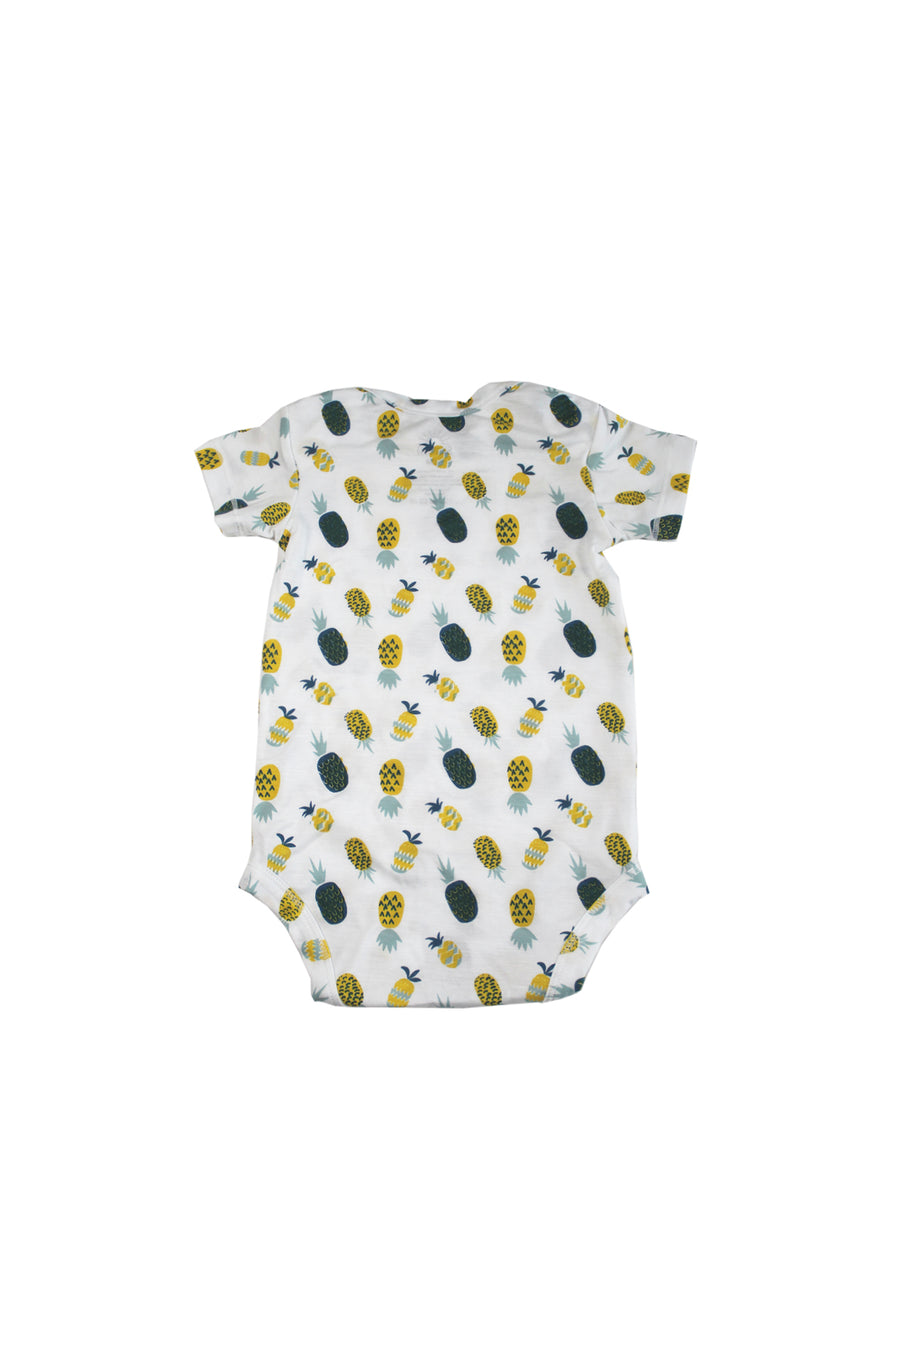 Short Sleeve Onesie - Pineapple